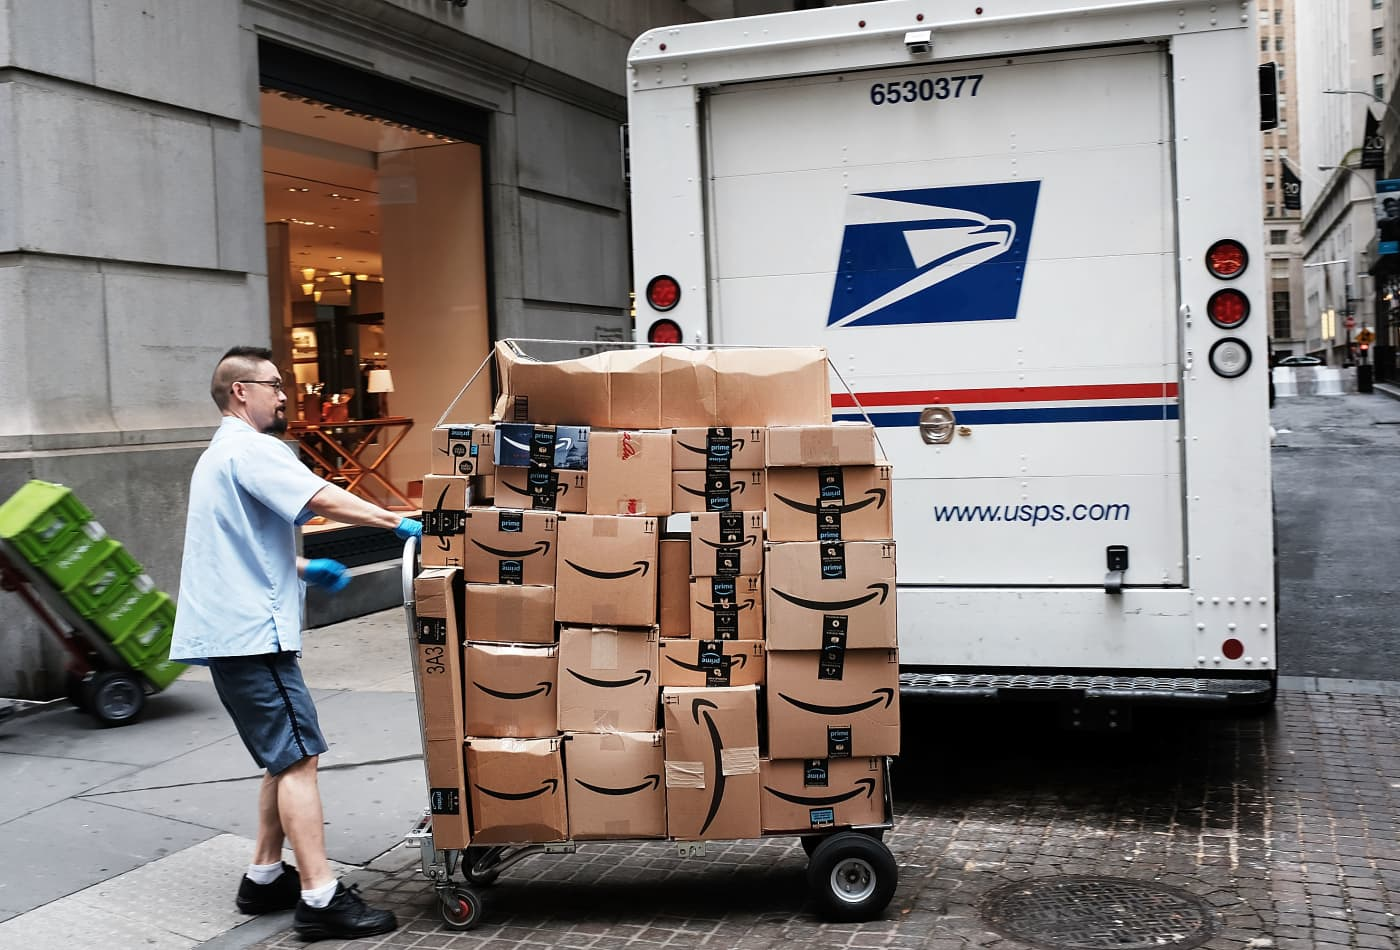 Millennials trust USPS more than Amazon: Morning Consult study